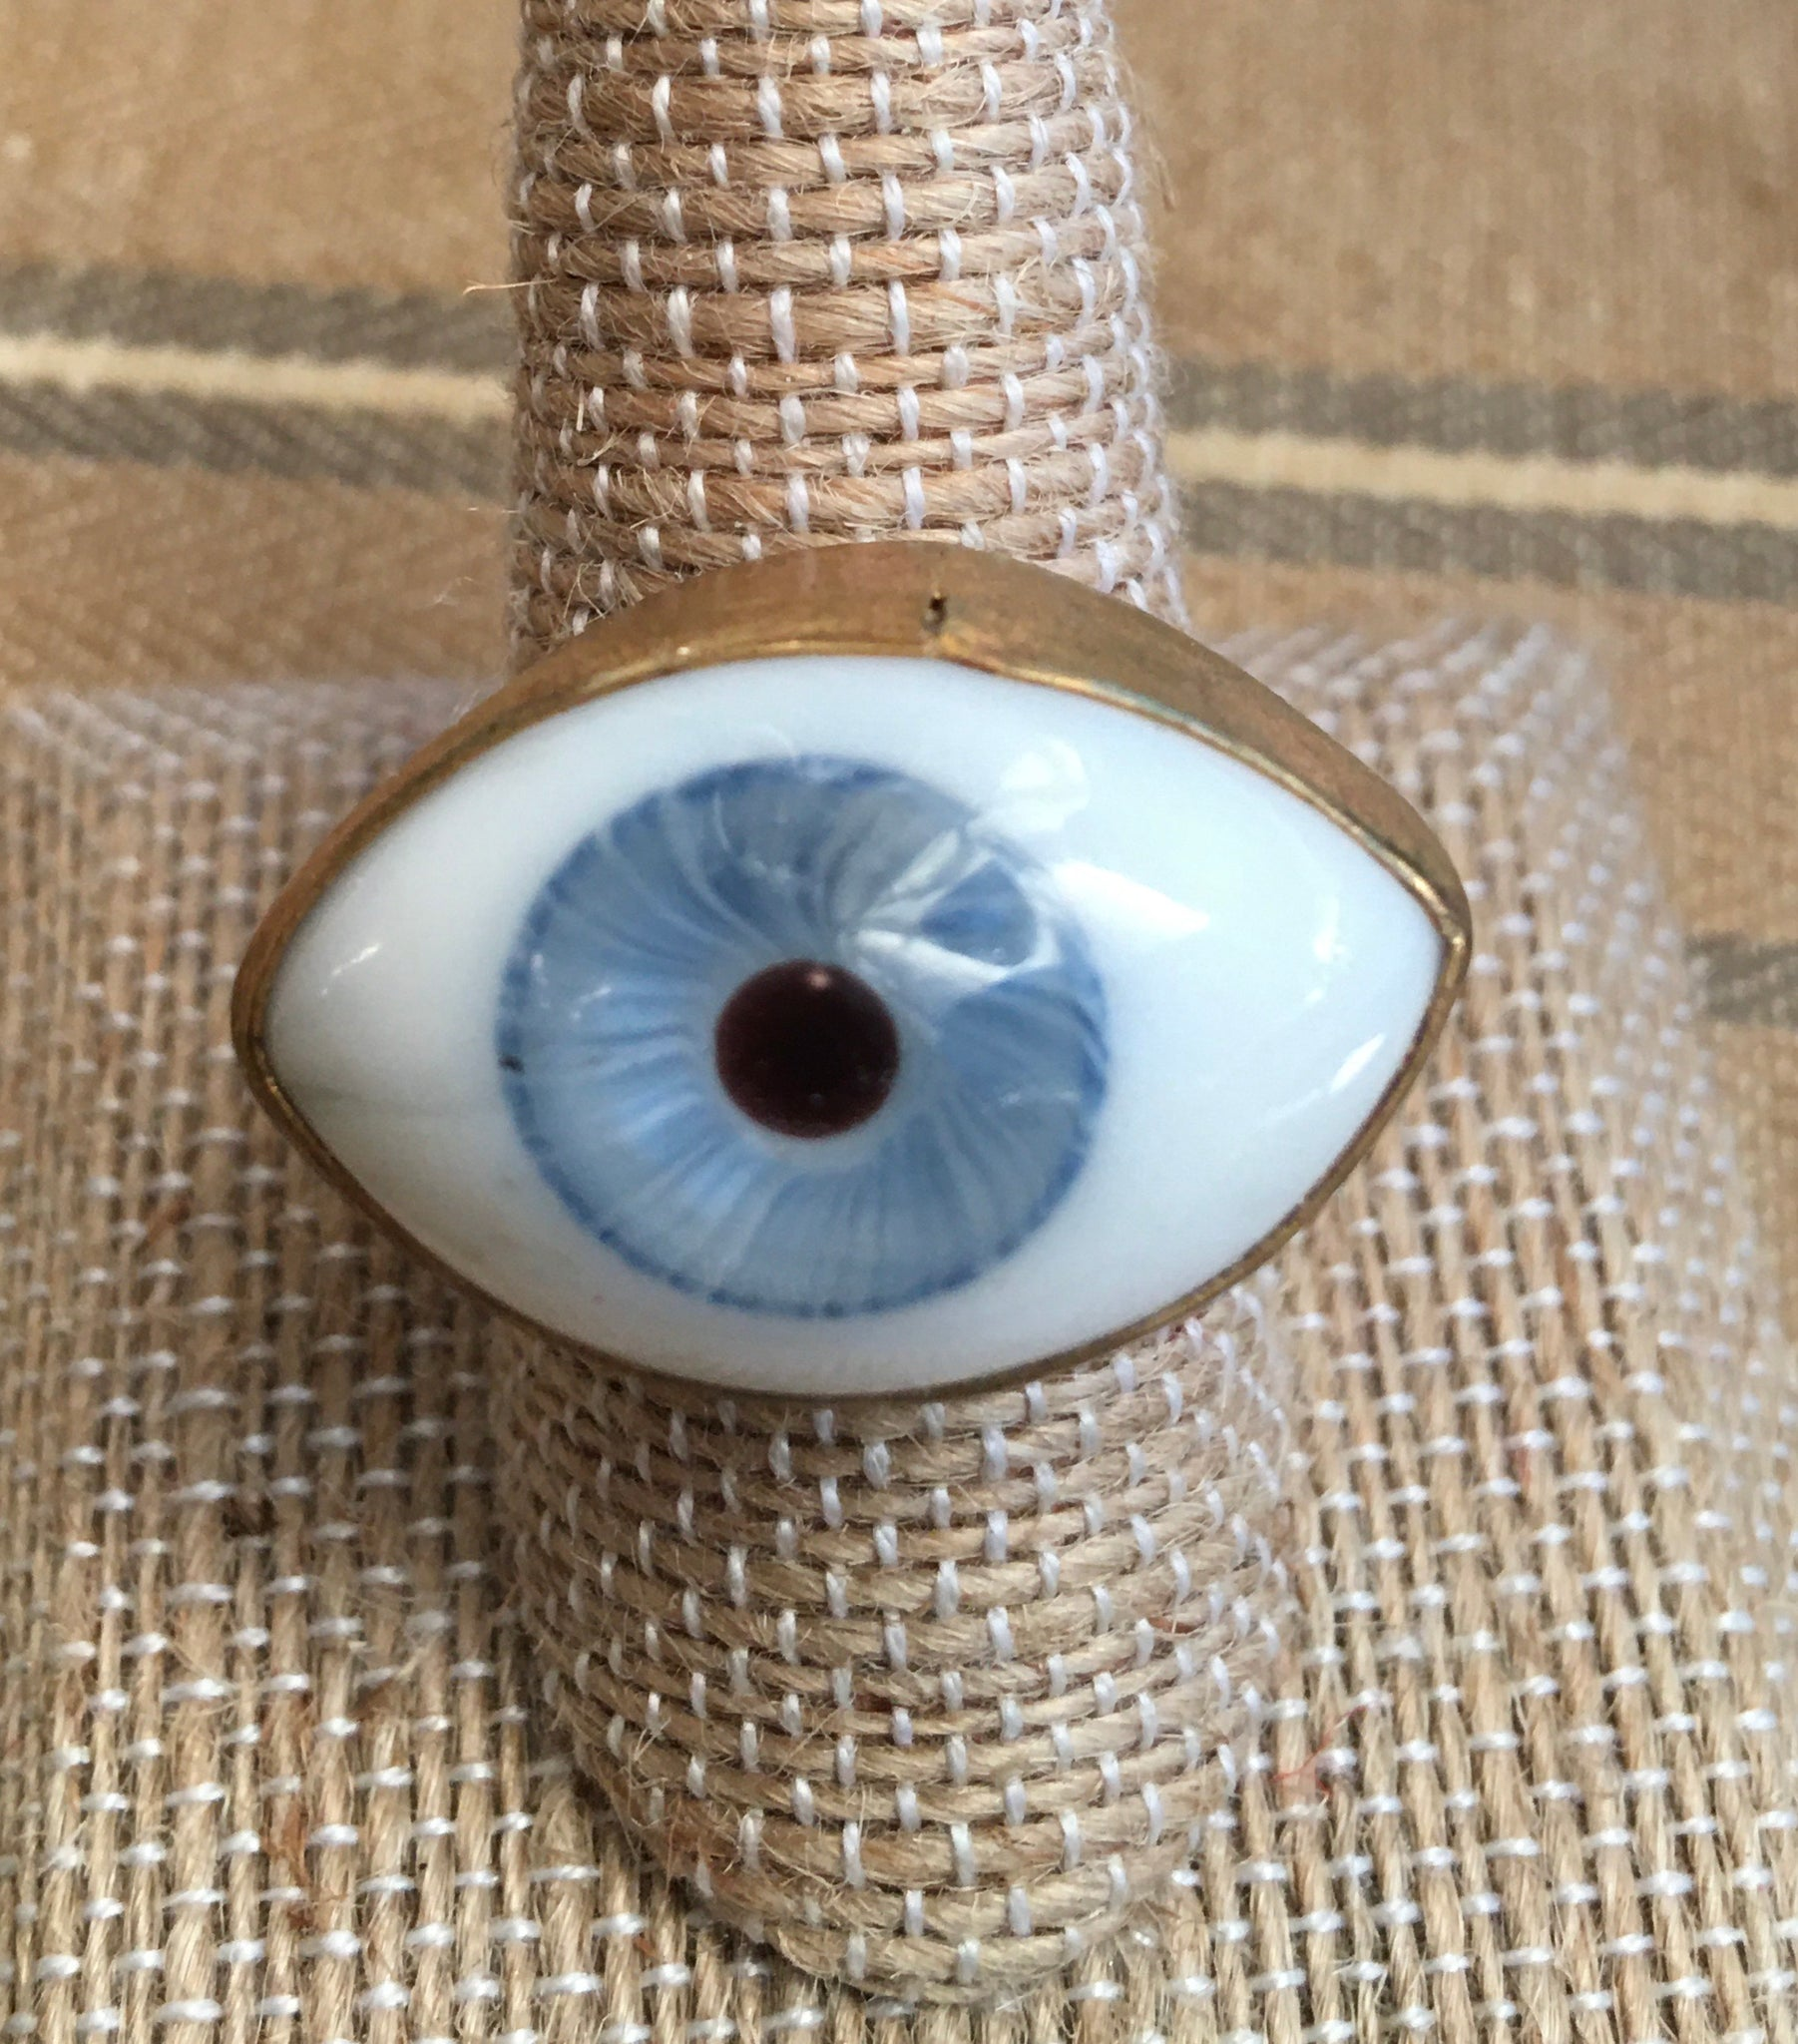 Size 9 hand-blown glass green eye ring set in brass